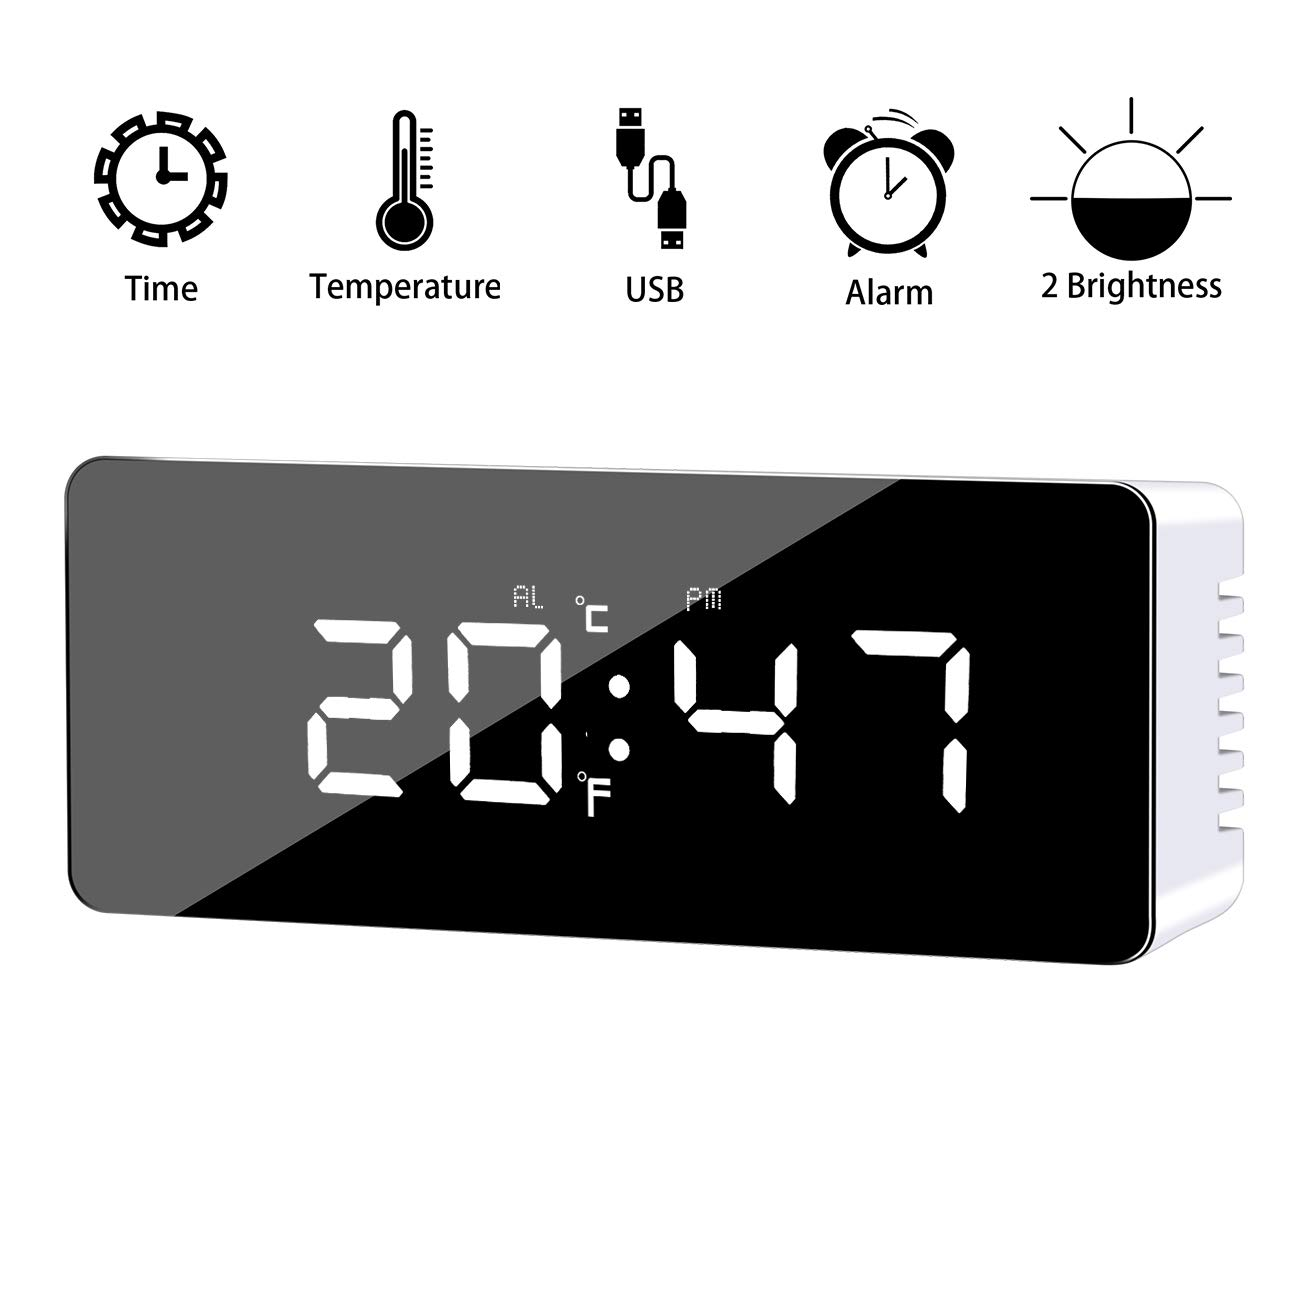 Alarm Clock, Digital Alarm Clock with Large LED Display, 2 Level Brightness, Snooze Function,Mirror Surface,Time and Temperature Mode, Powered by USB Charging Port or Battery